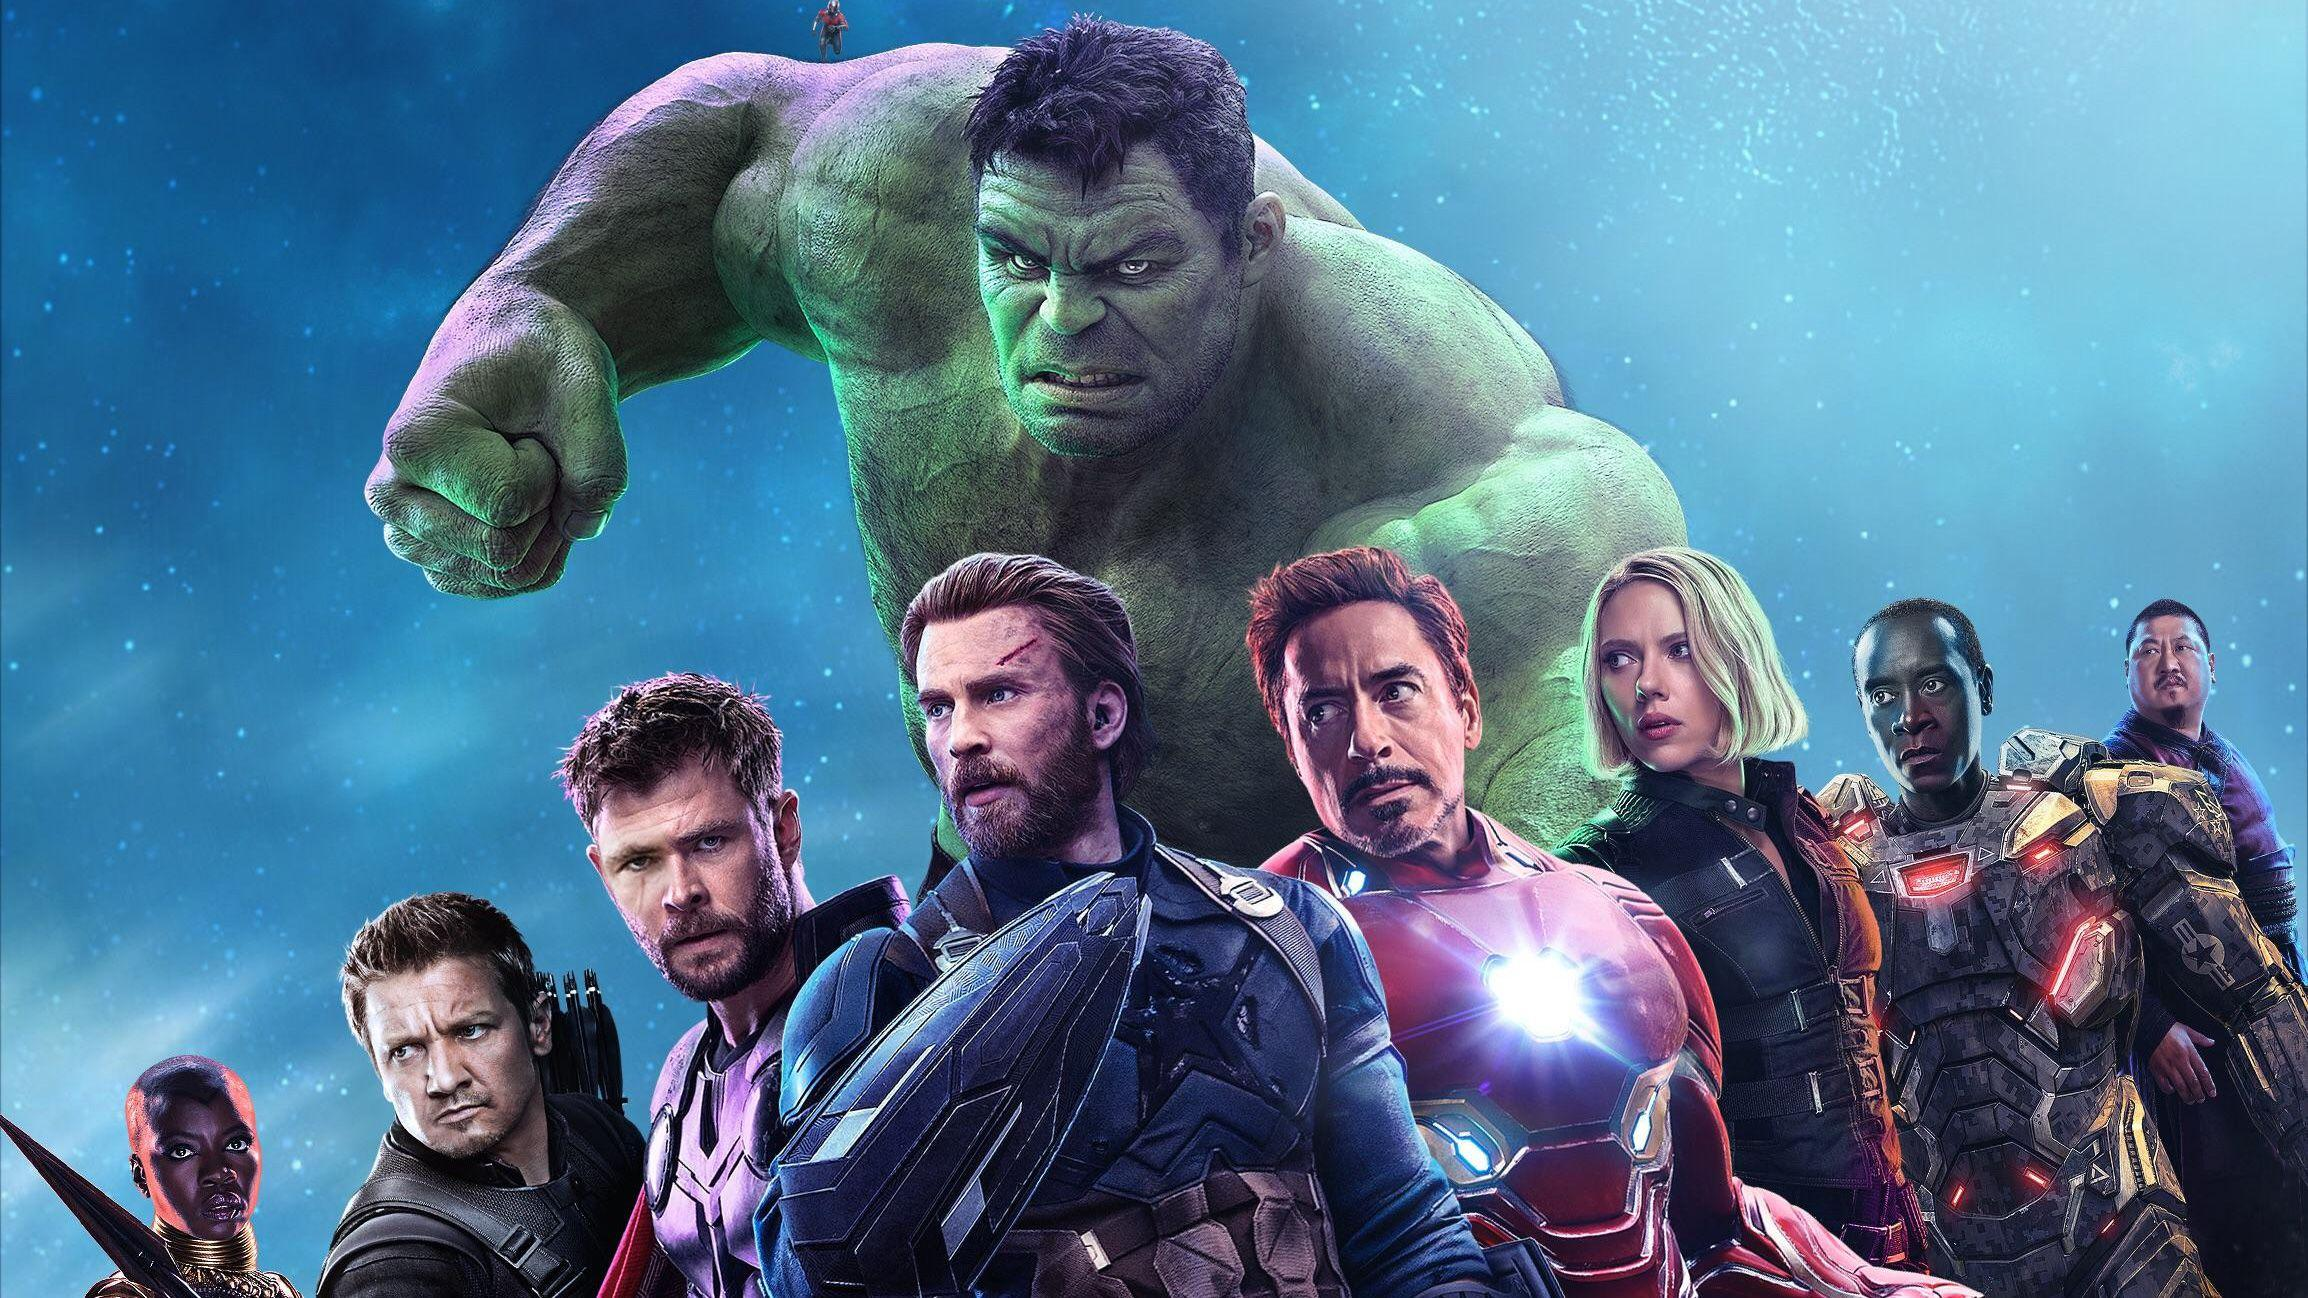 Avengers End Game 2019 Movie, HD Movies, 4k Wallpapers, Image